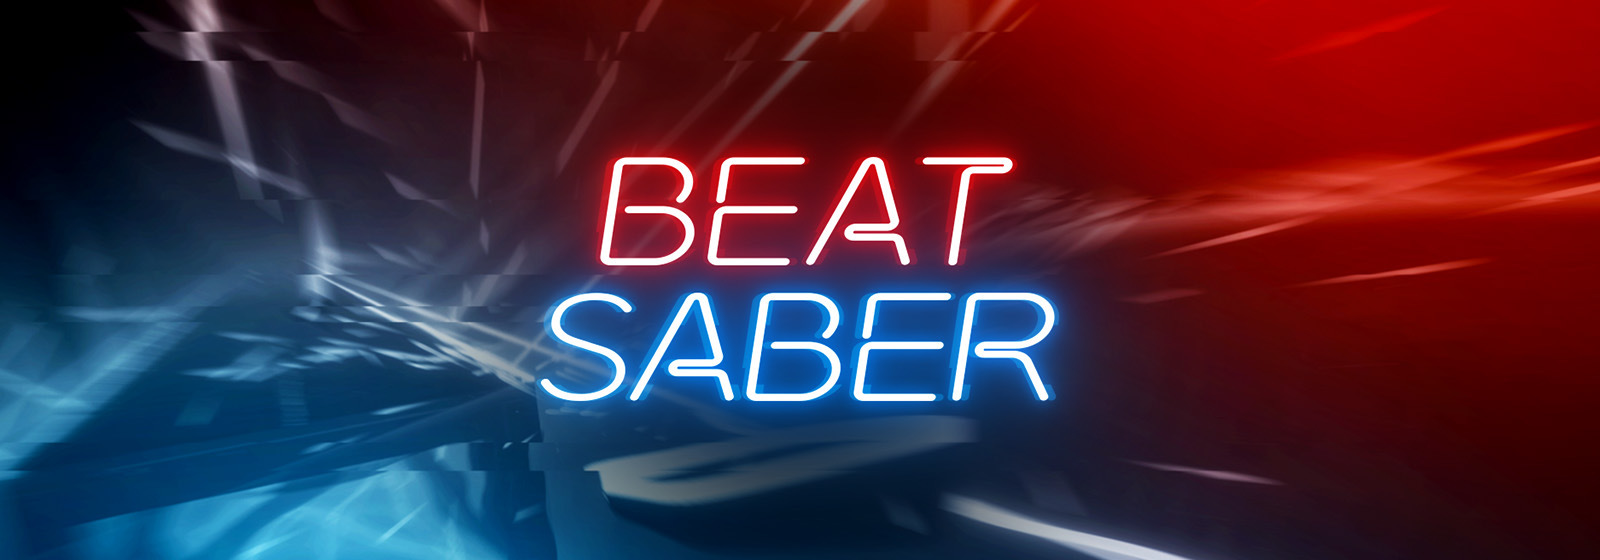 Beat Saber Apparel Store